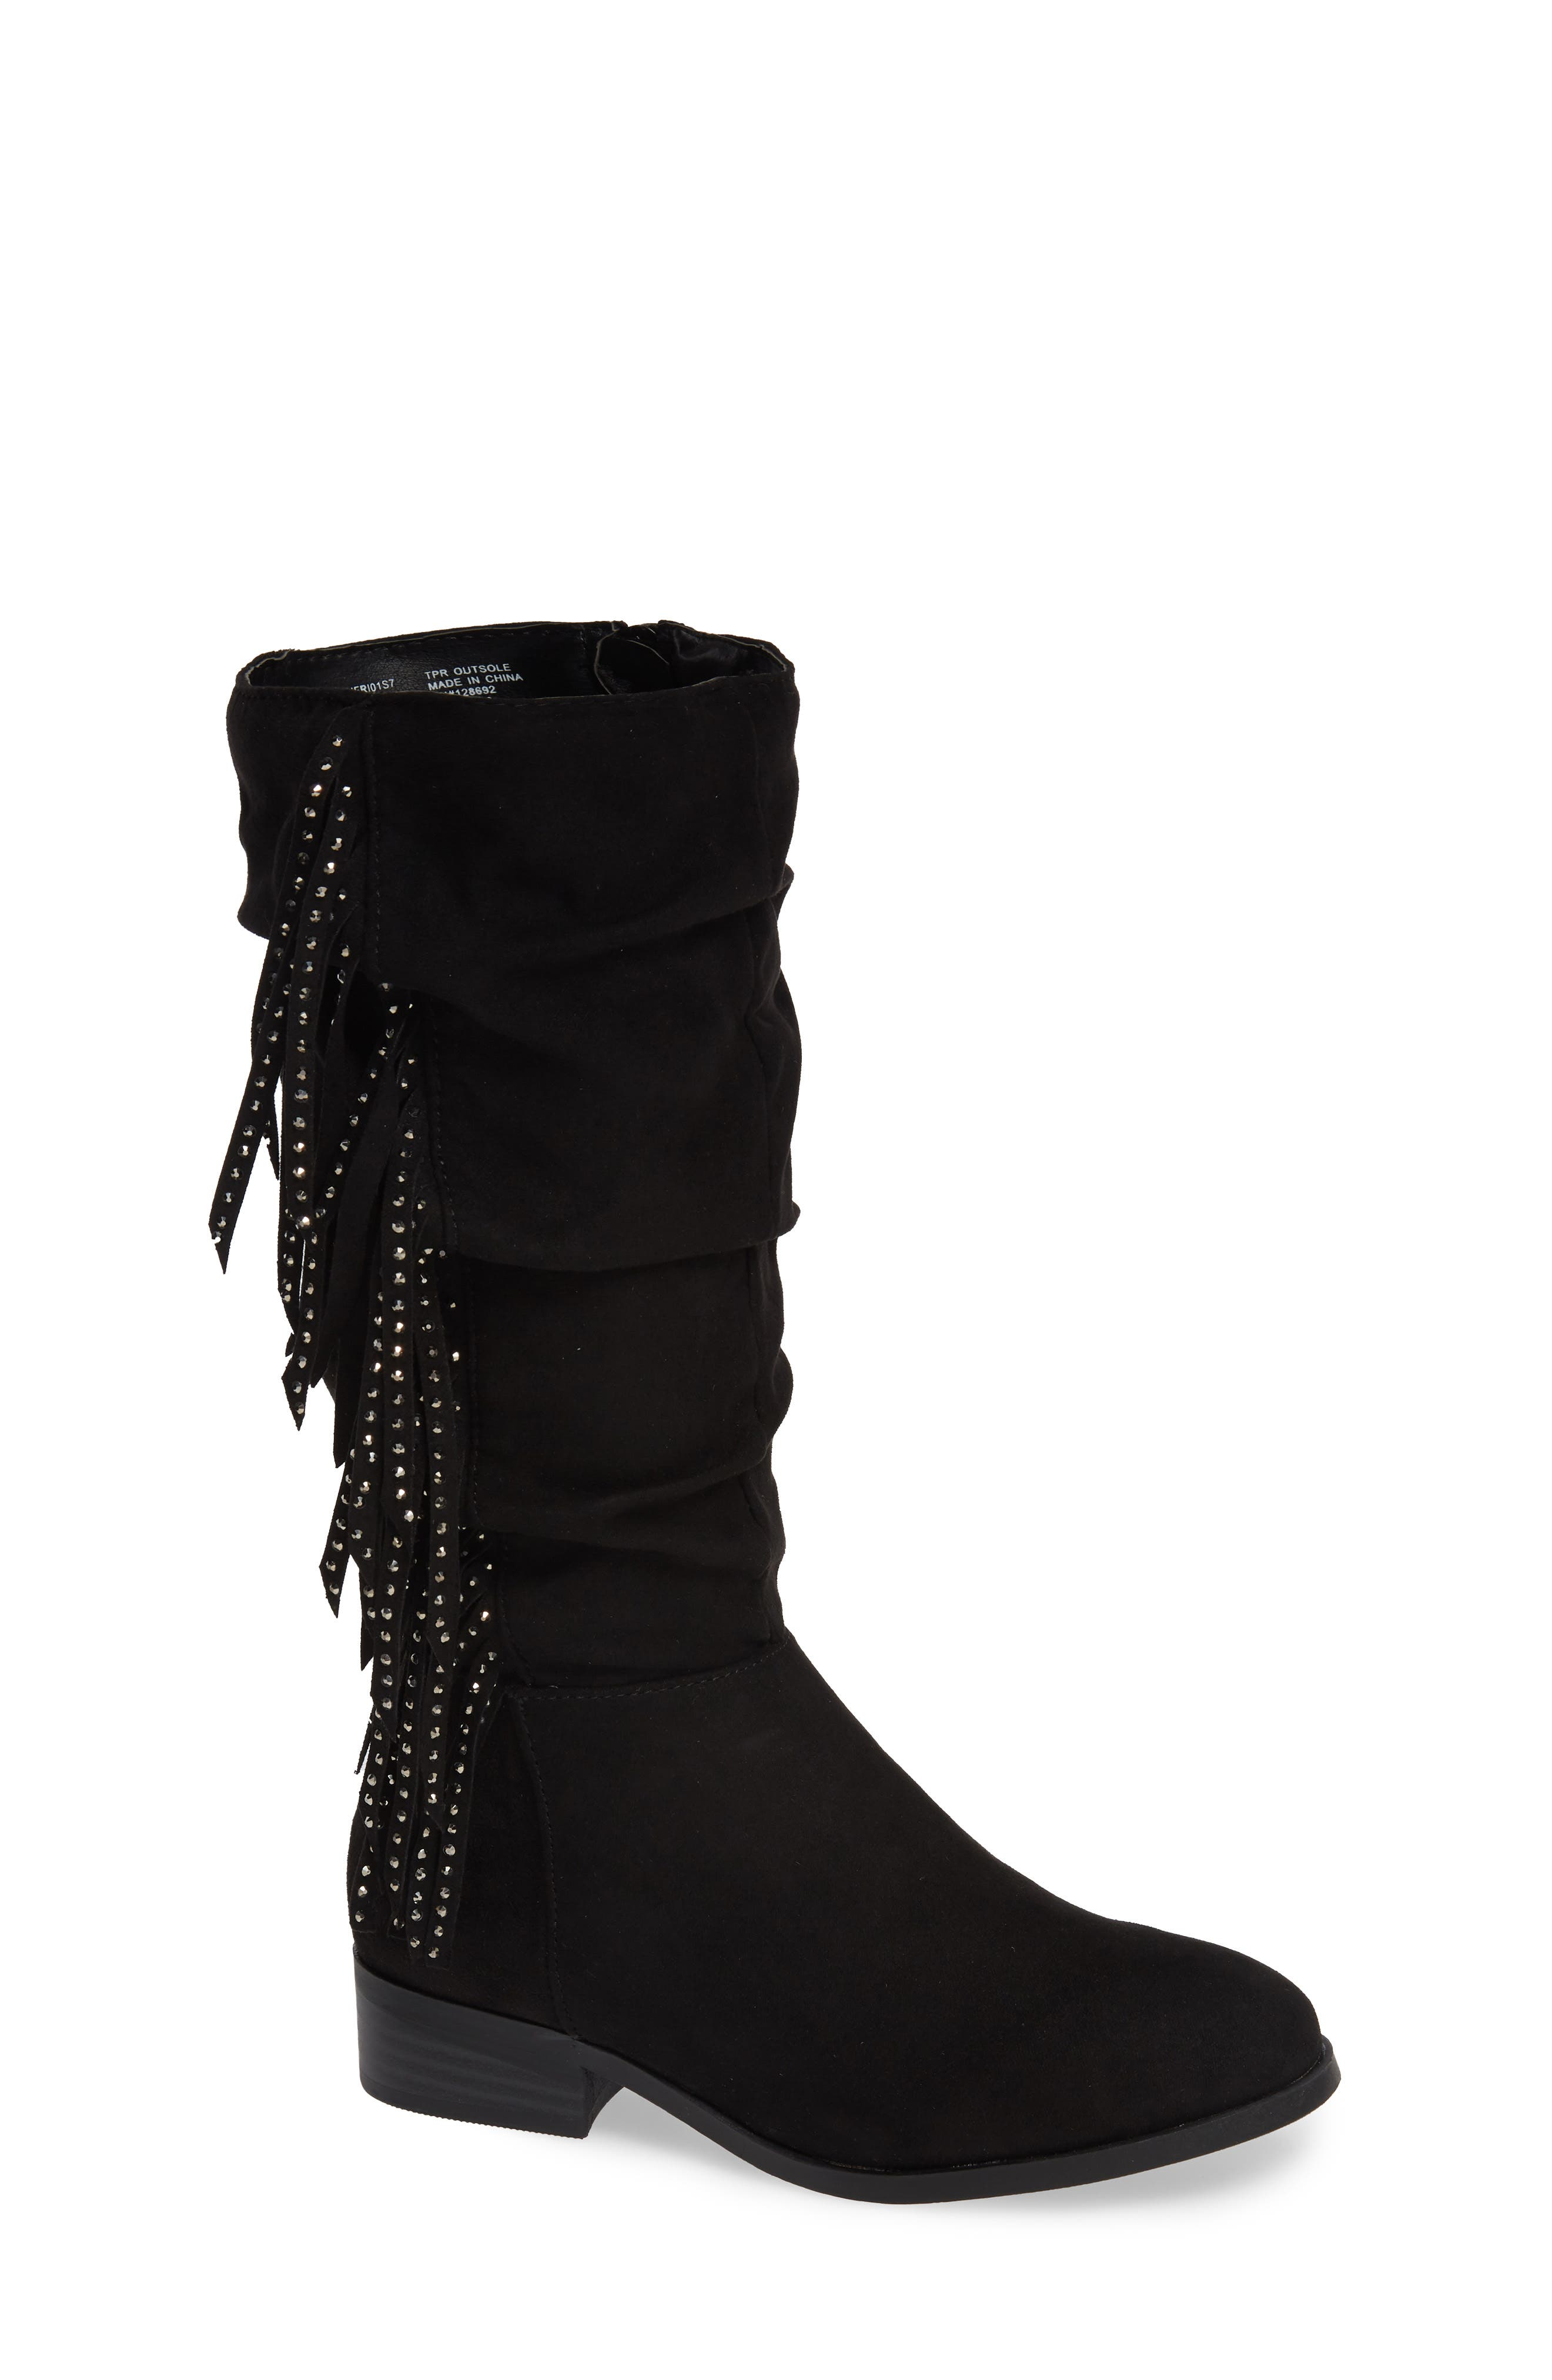 Jfringly Slouchy Fringed Boot,                             Main thumbnail 1, color,                             BLACK MICRO